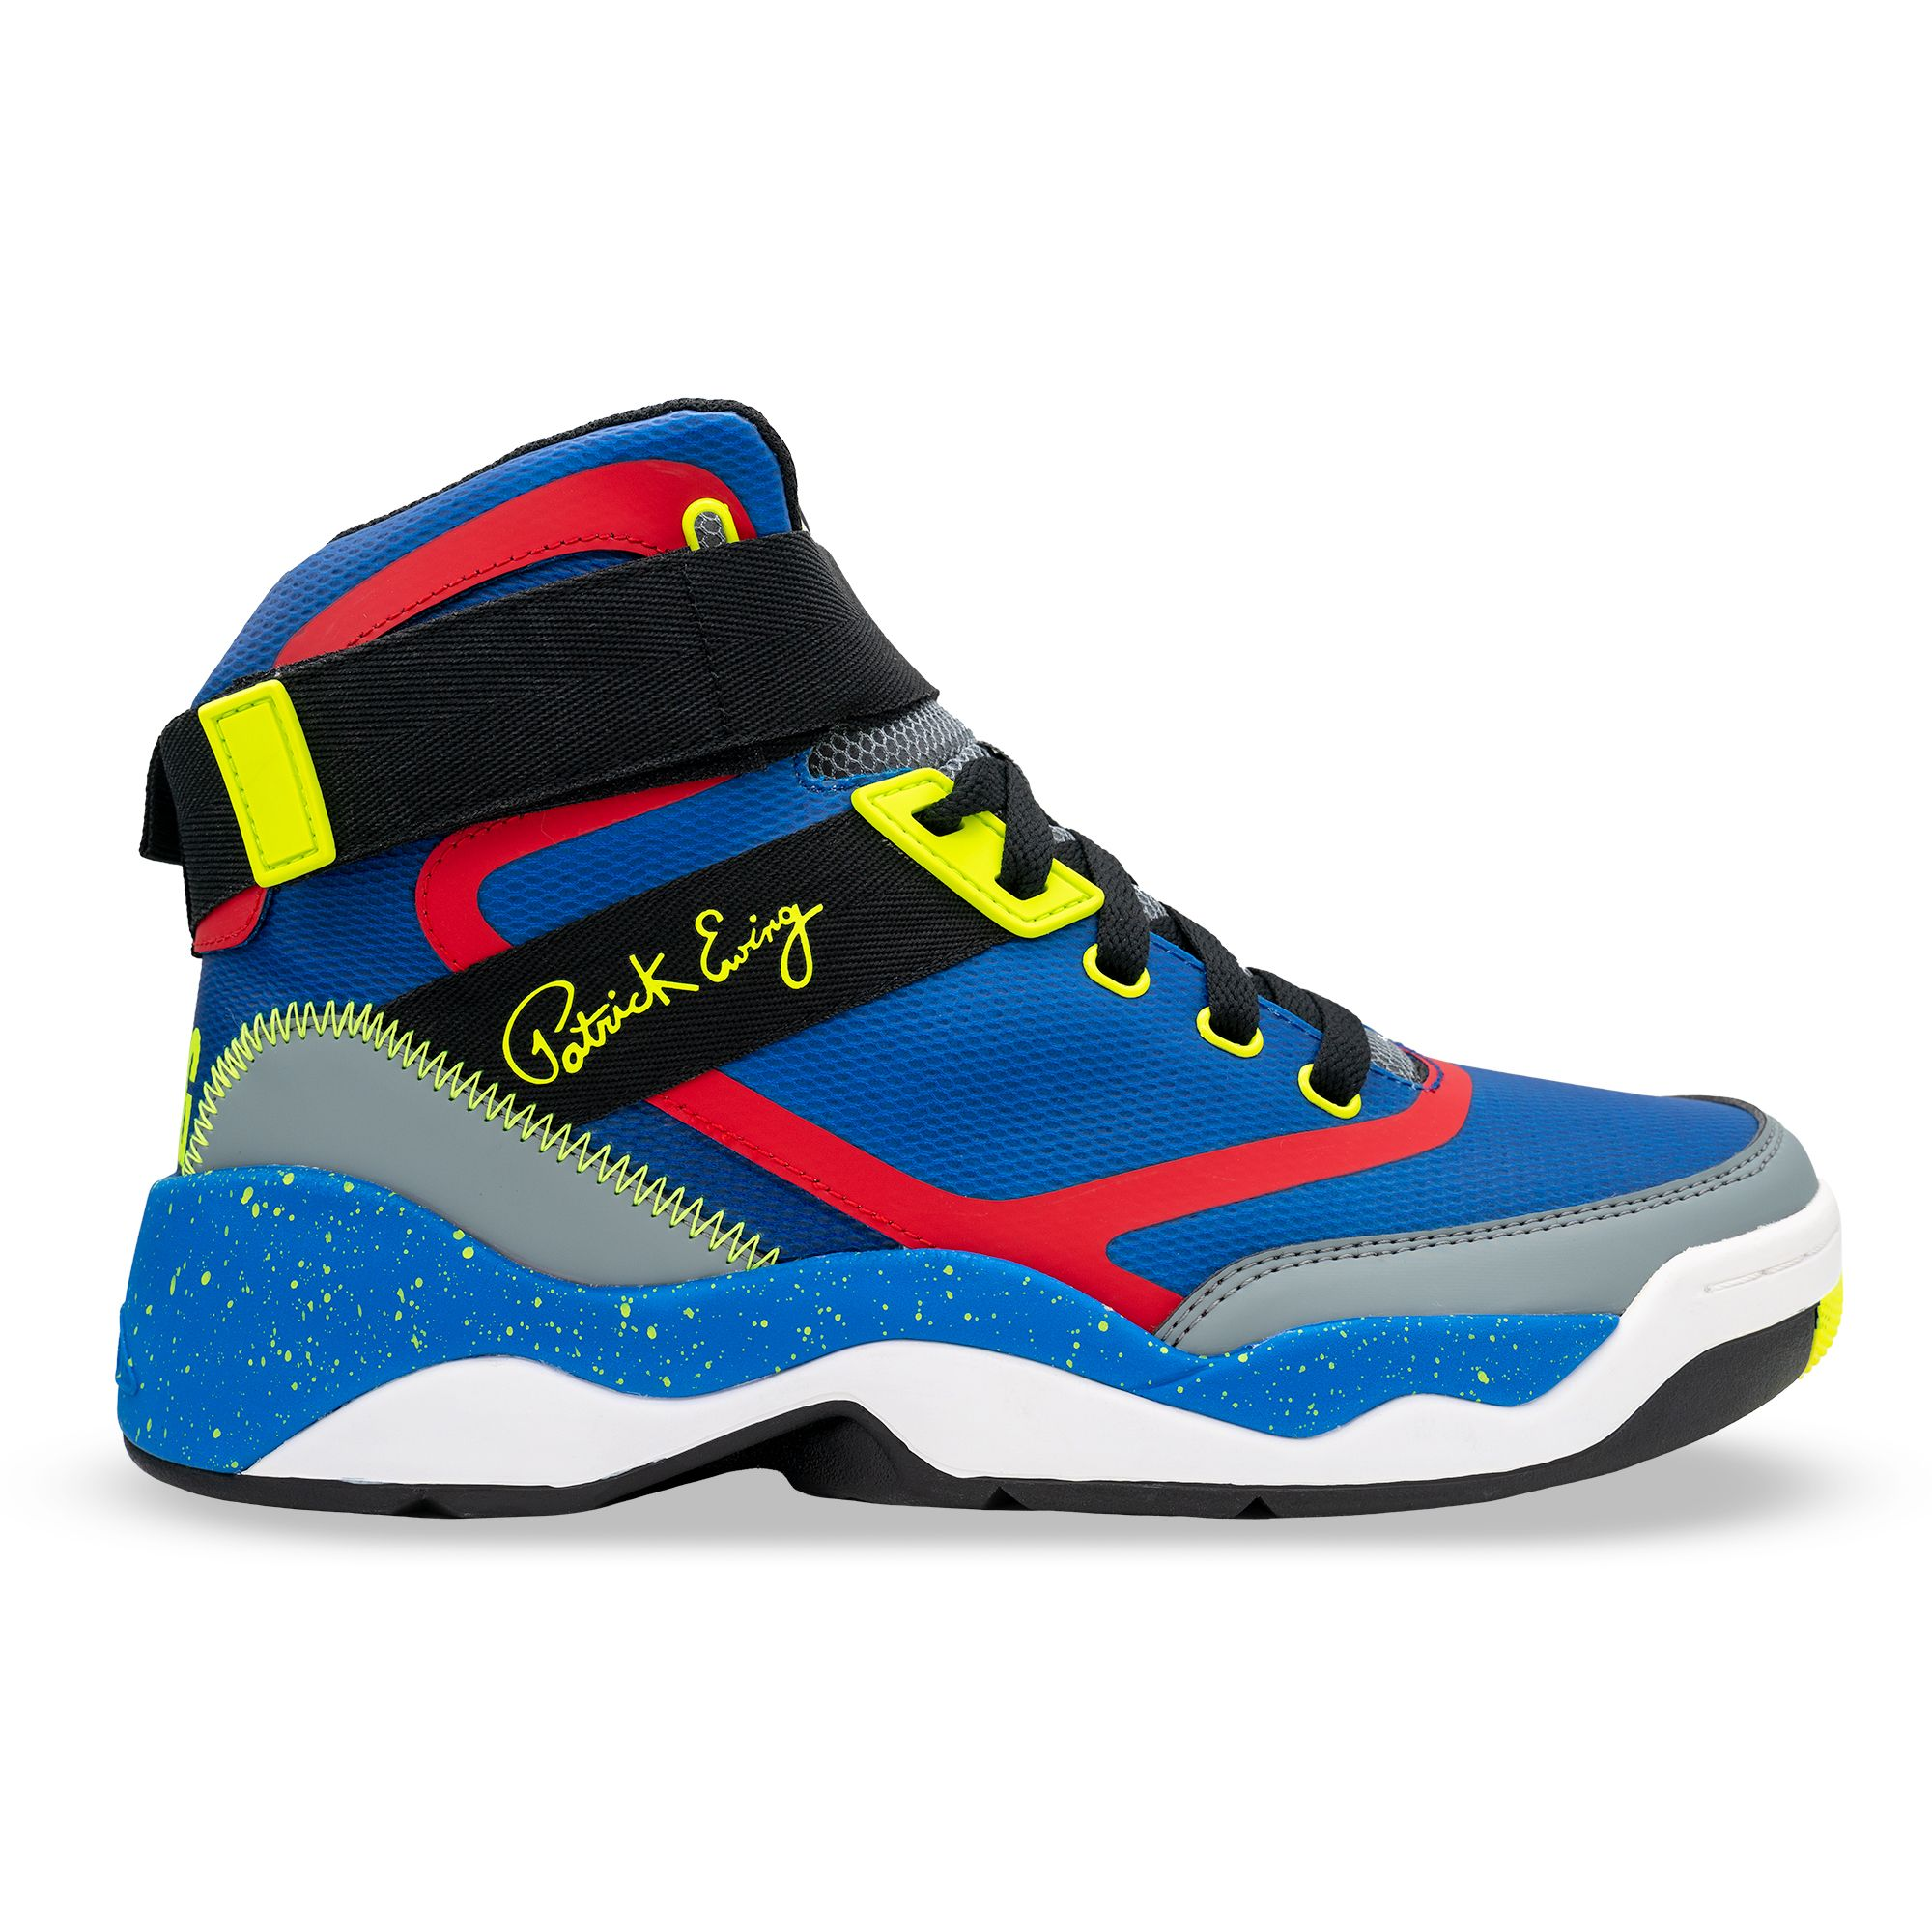 Ewing Unleashes 33 HI 2.0, The First